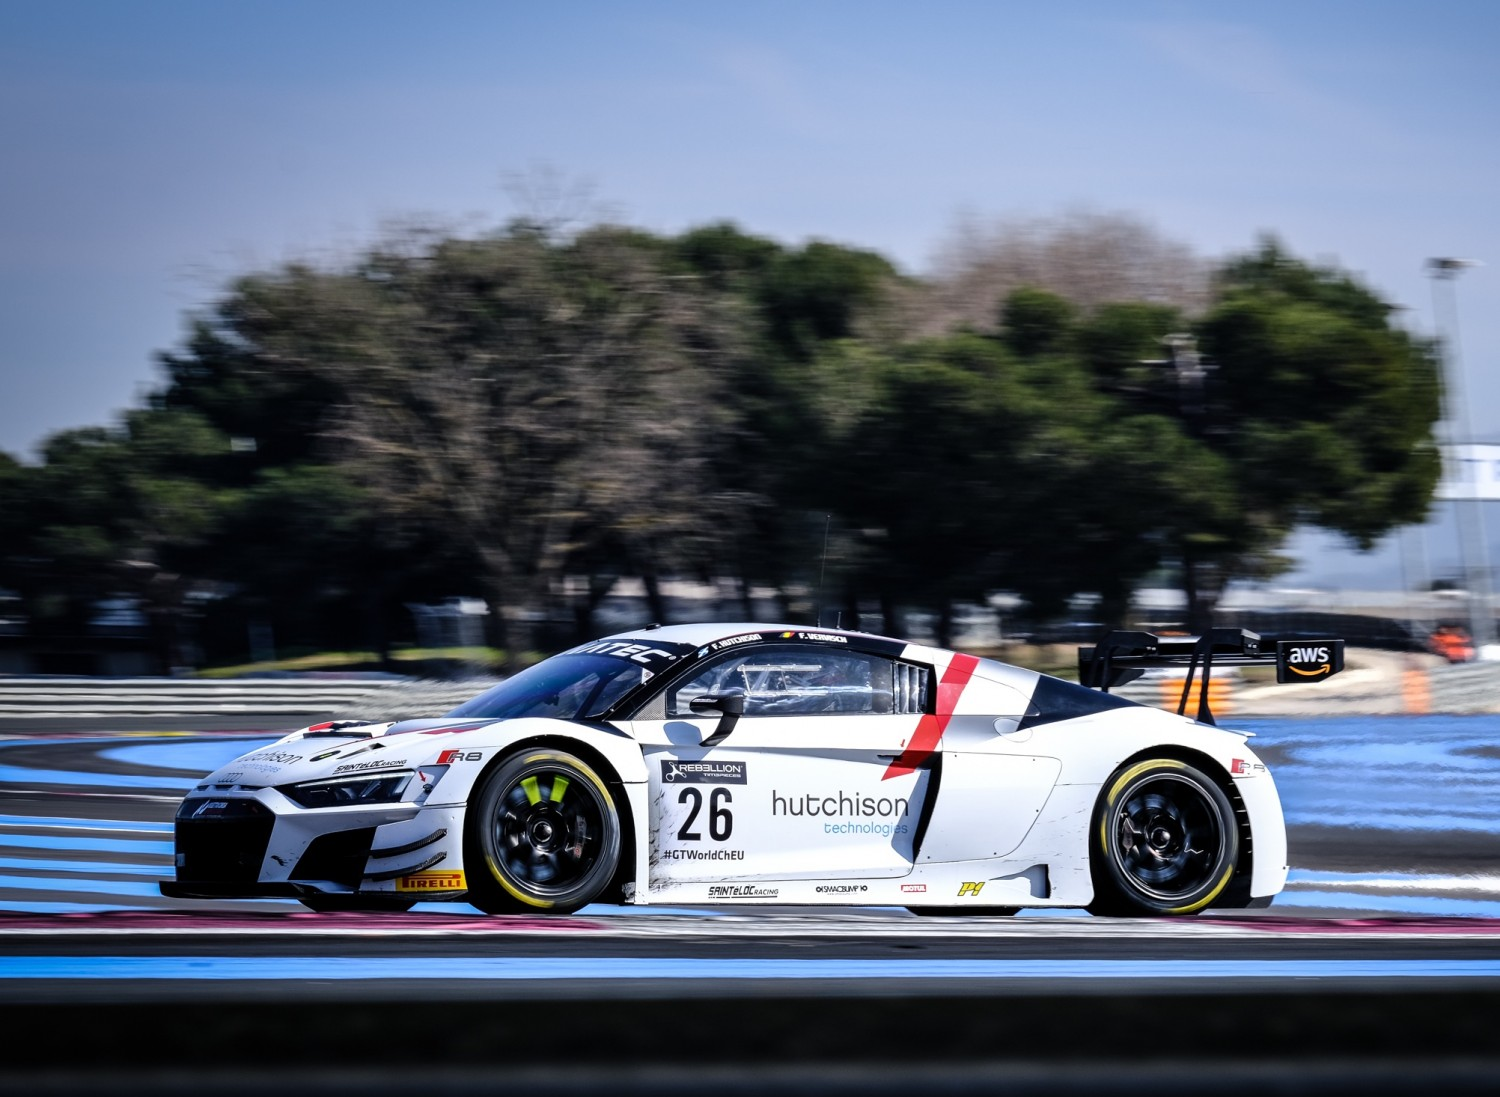 Sainteloc Racing Audi tops opening day of testing at Circuit Paul Ricard to launch 2021 season